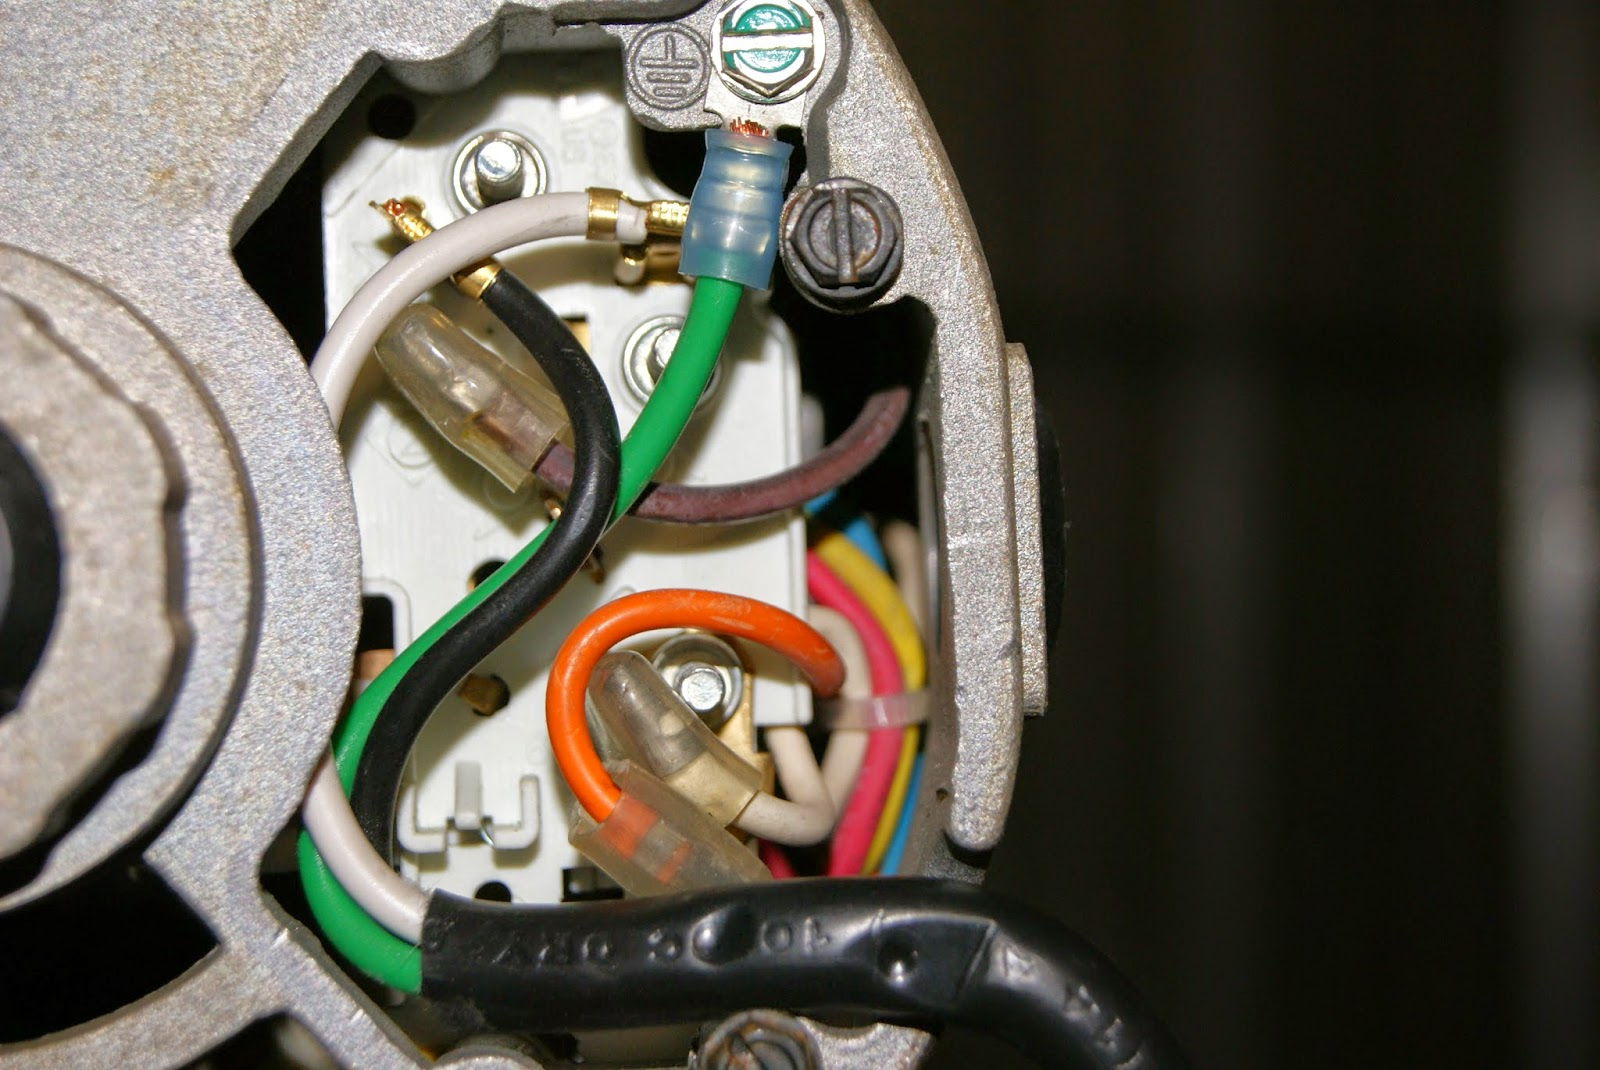 Outlet And Switch Wiring Diagram Car Damage Inspection Dog Aviation John's Rv-12 Blog: New Power For Air Compressor